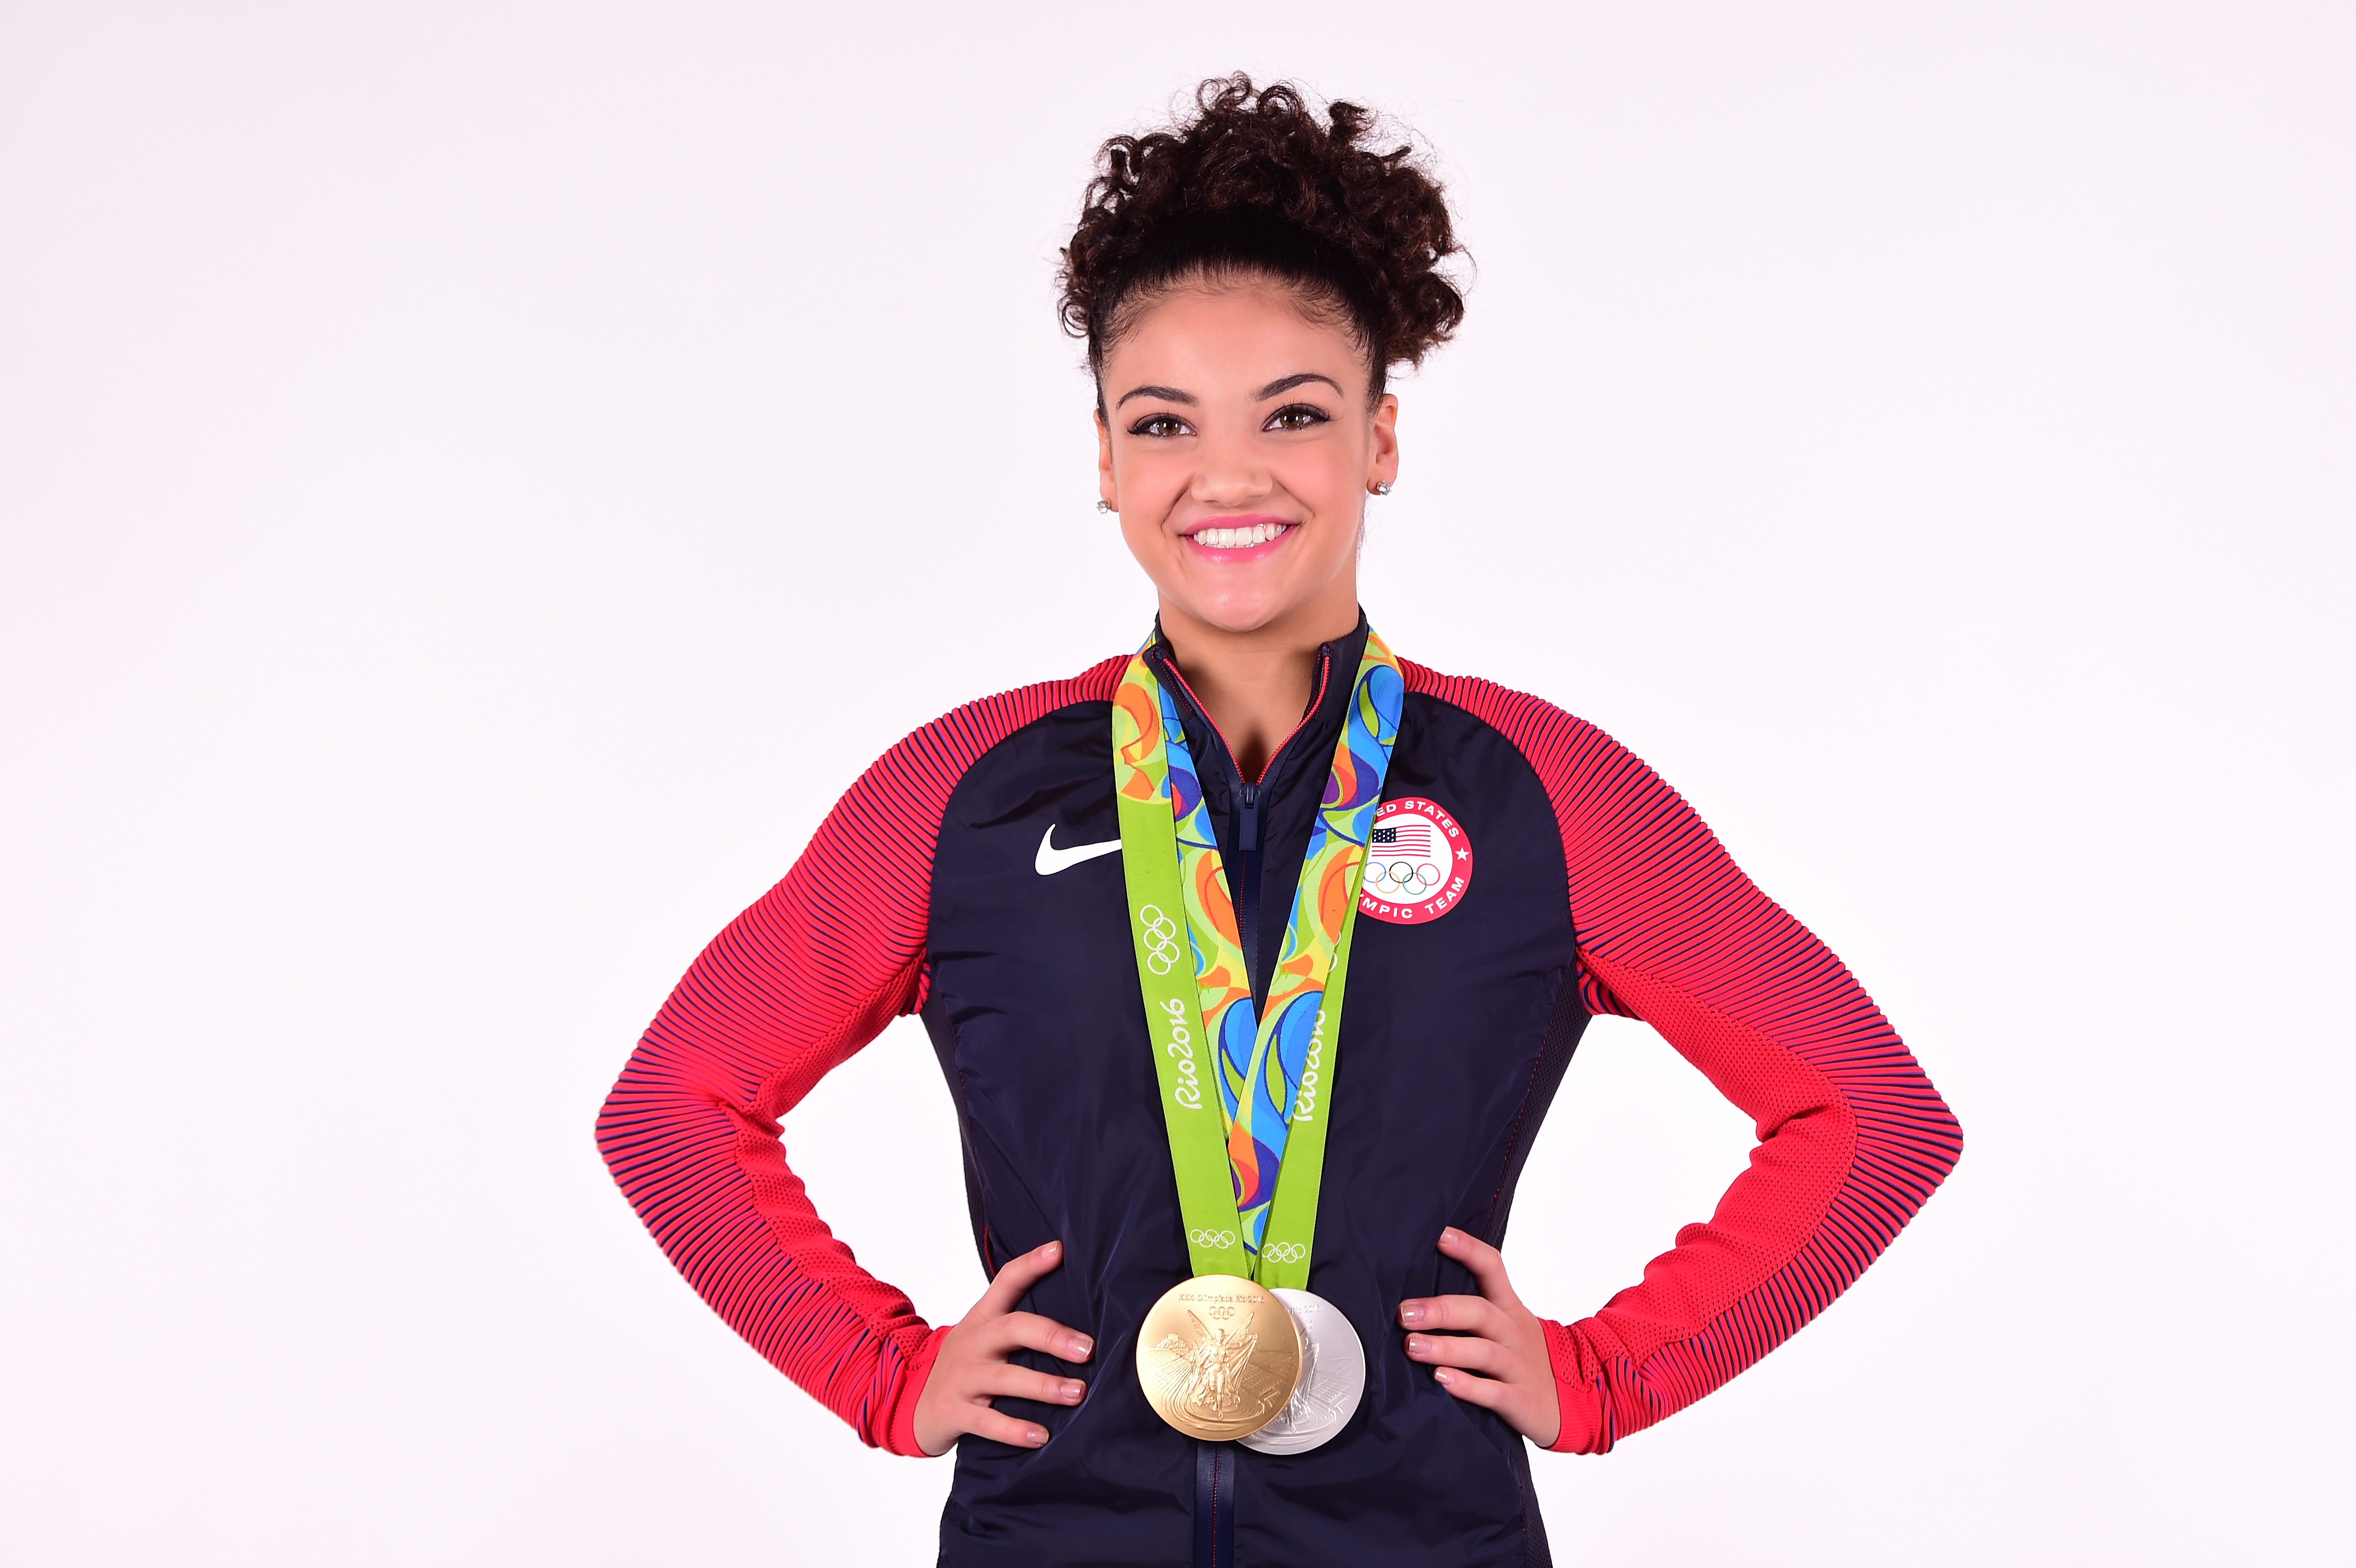 Gold Medalist To Speak At UCO